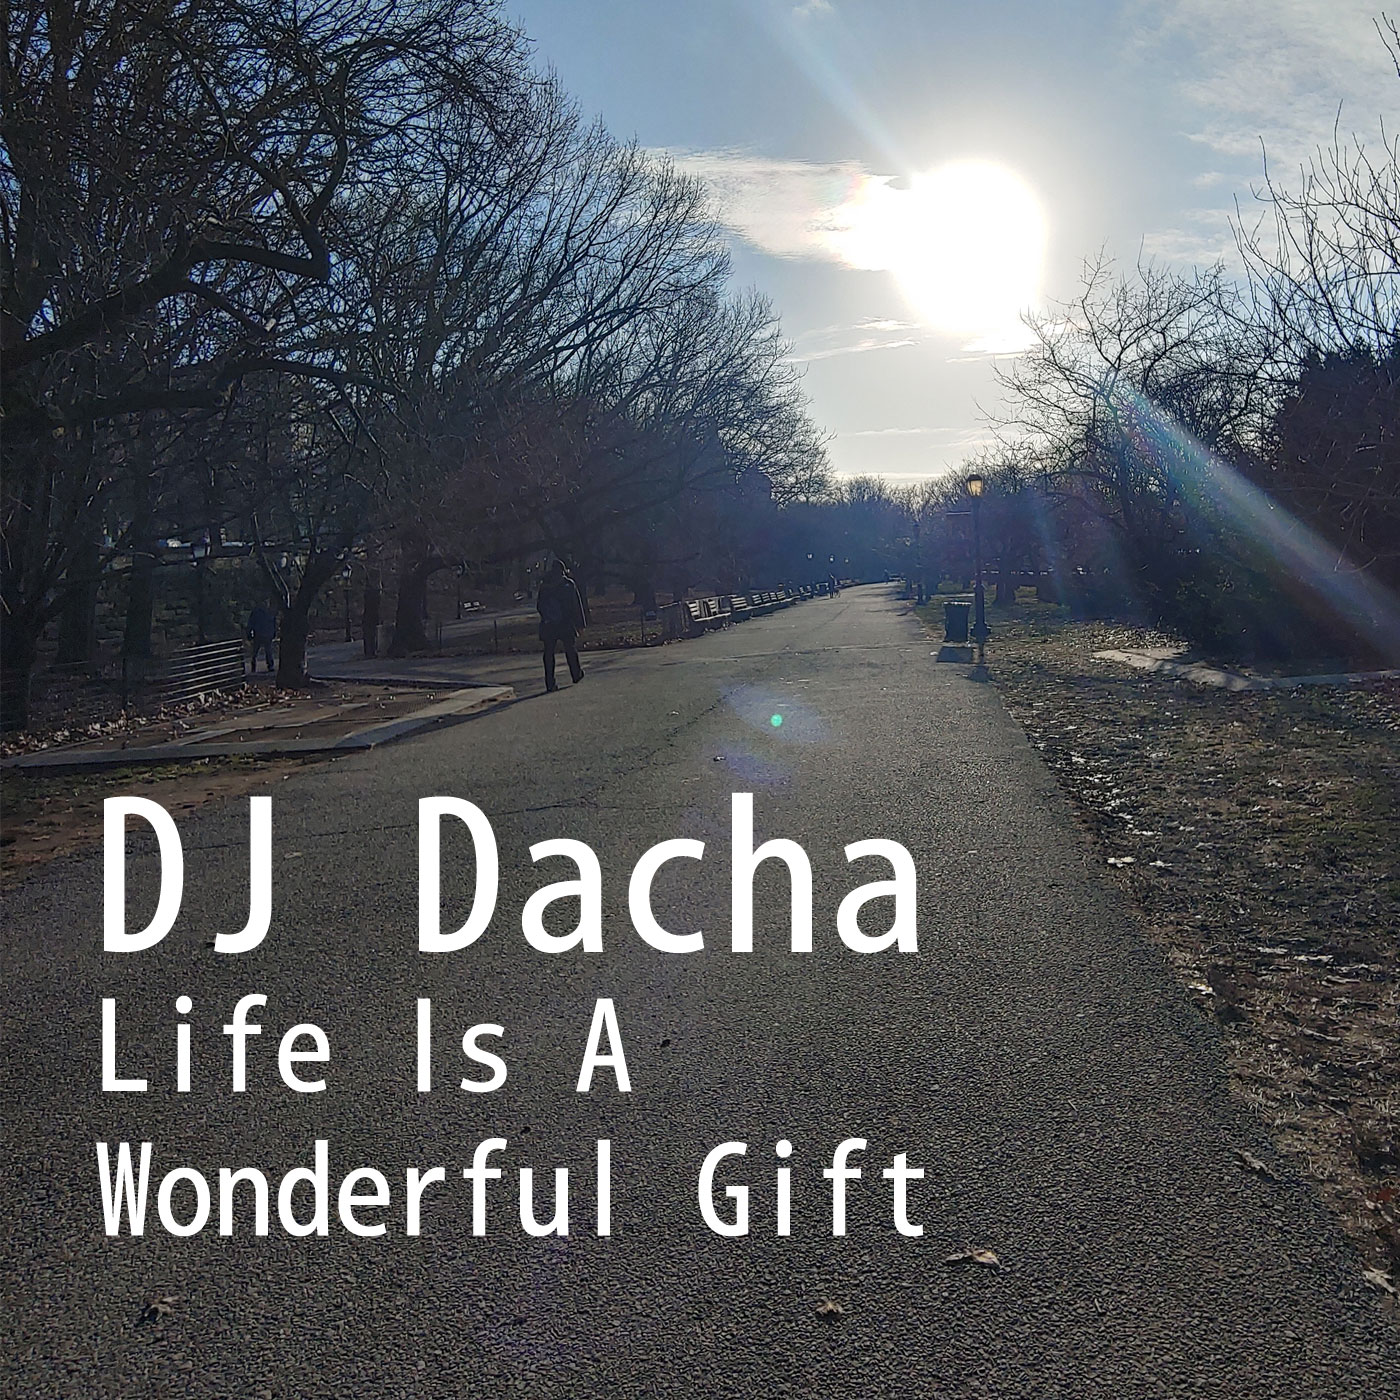 DJ Dacha - Life Is A Wondereful Gift www.djdacha.net